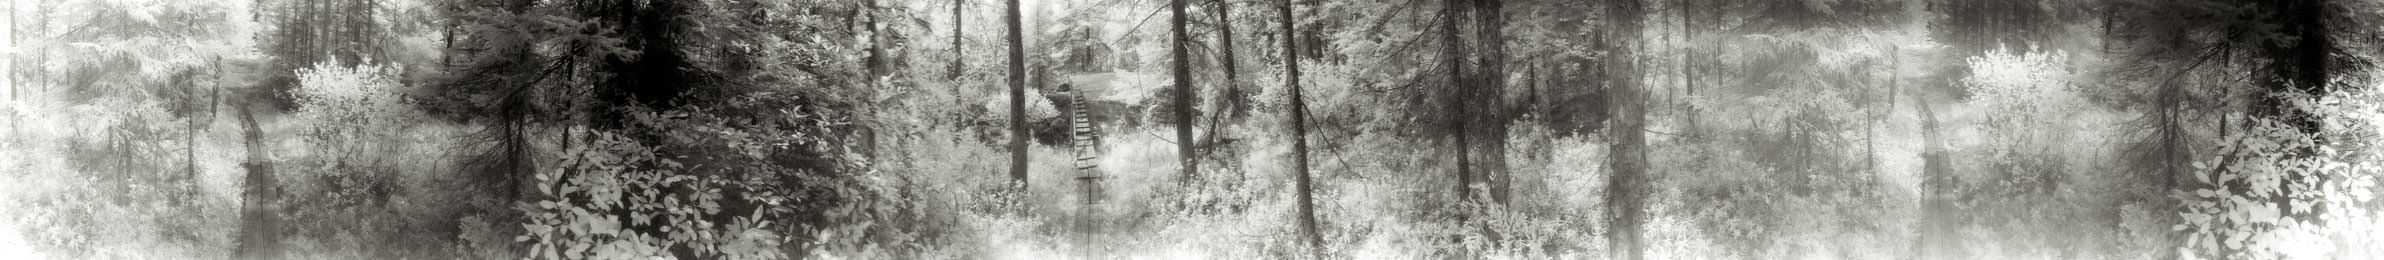 """""""Plank Trail"""" from the series Footprints, by William Mokrynski"""